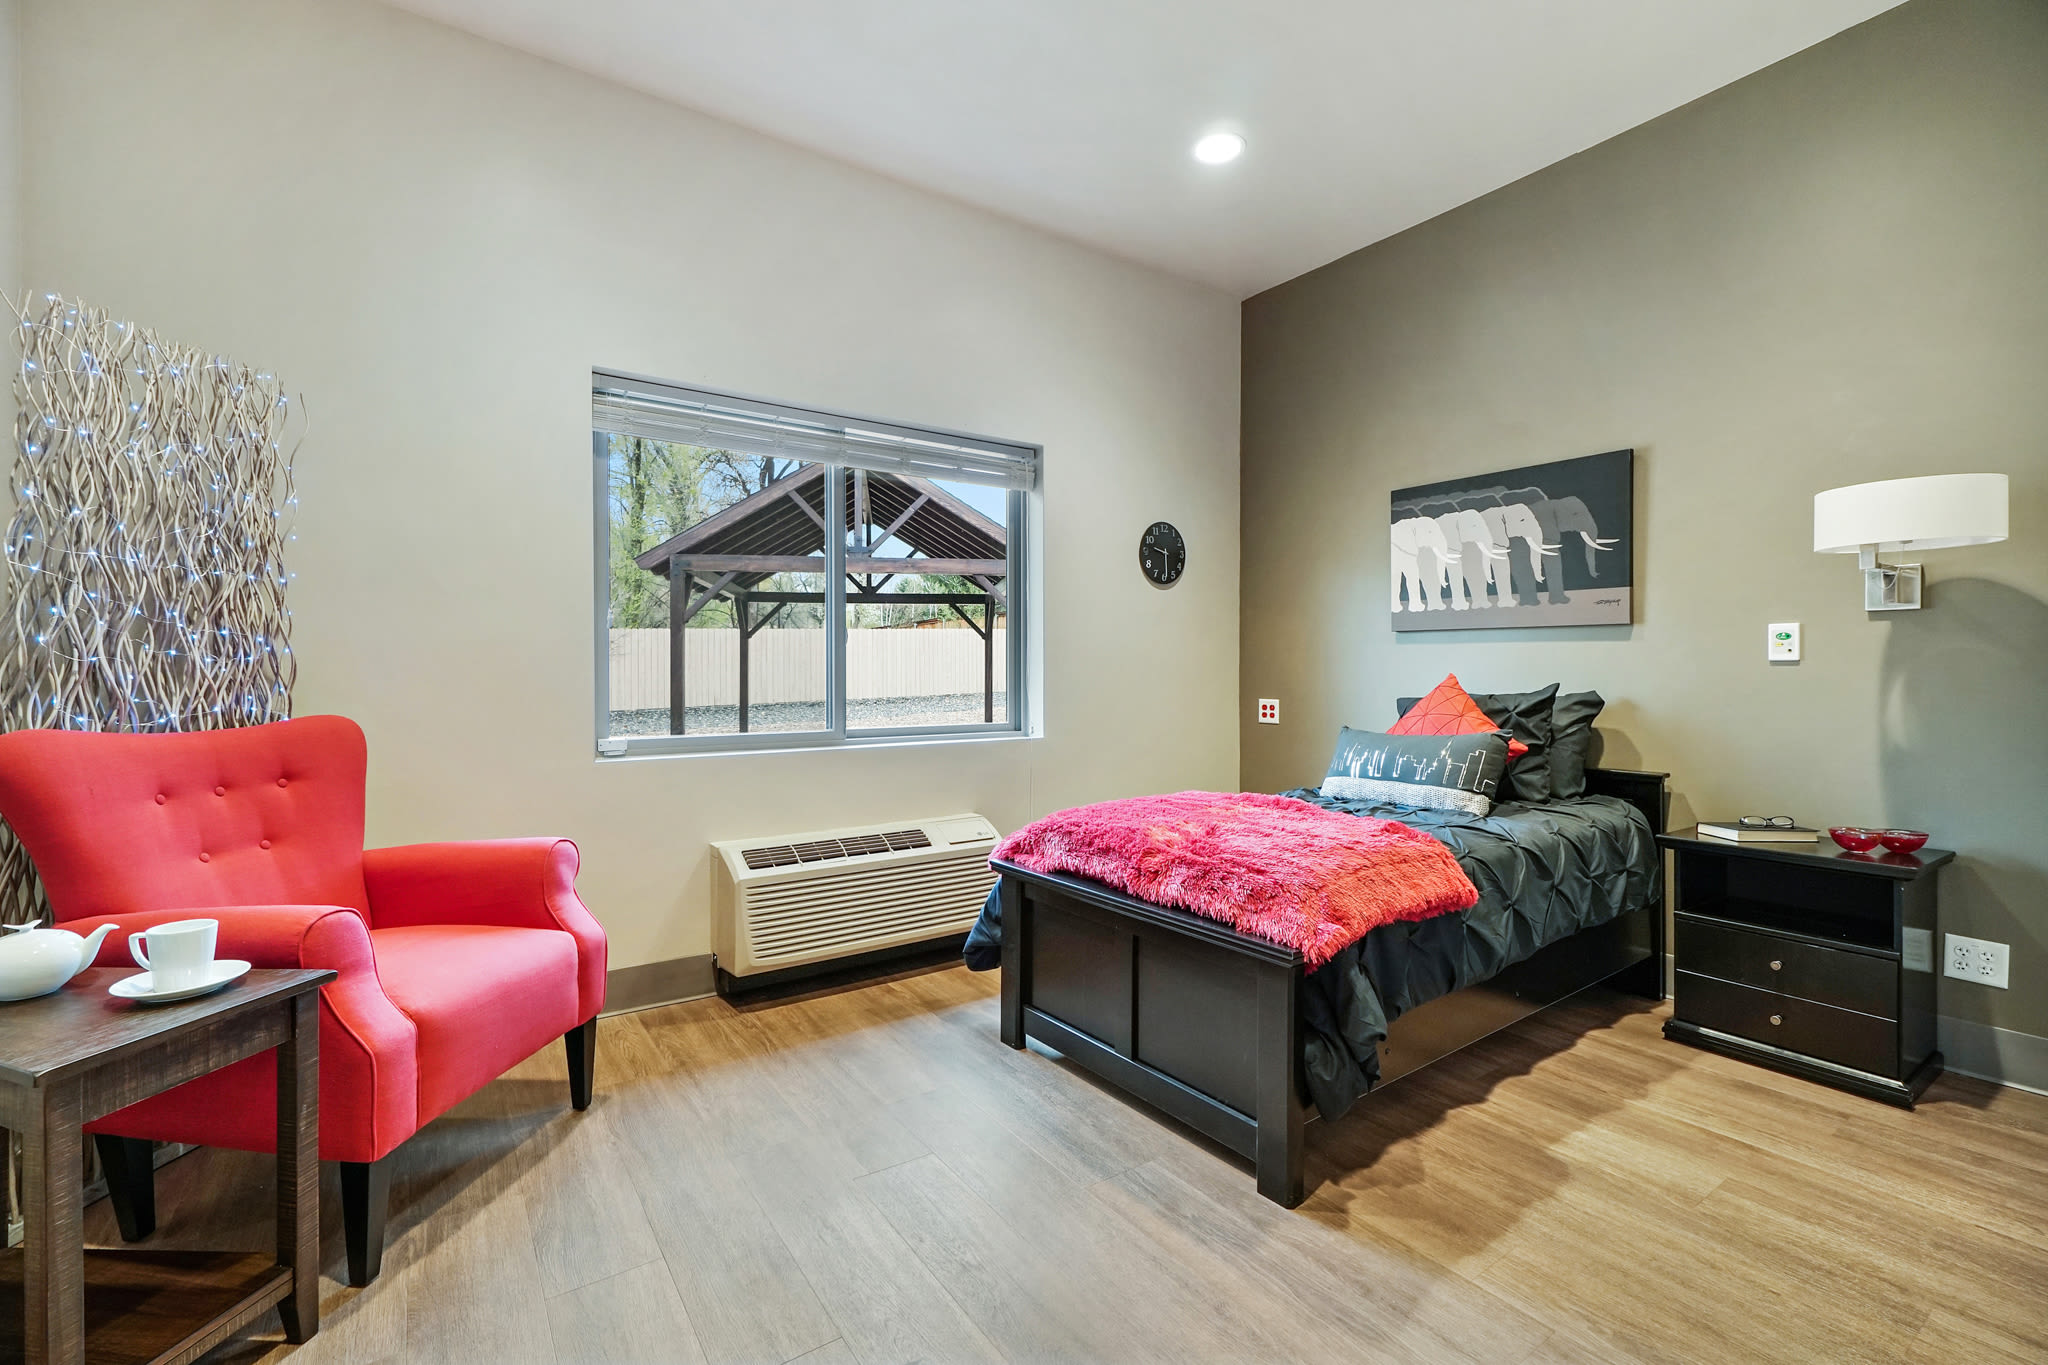 Cozy furnished room at Western Slope Memory Care in Grand Junction in Colorado